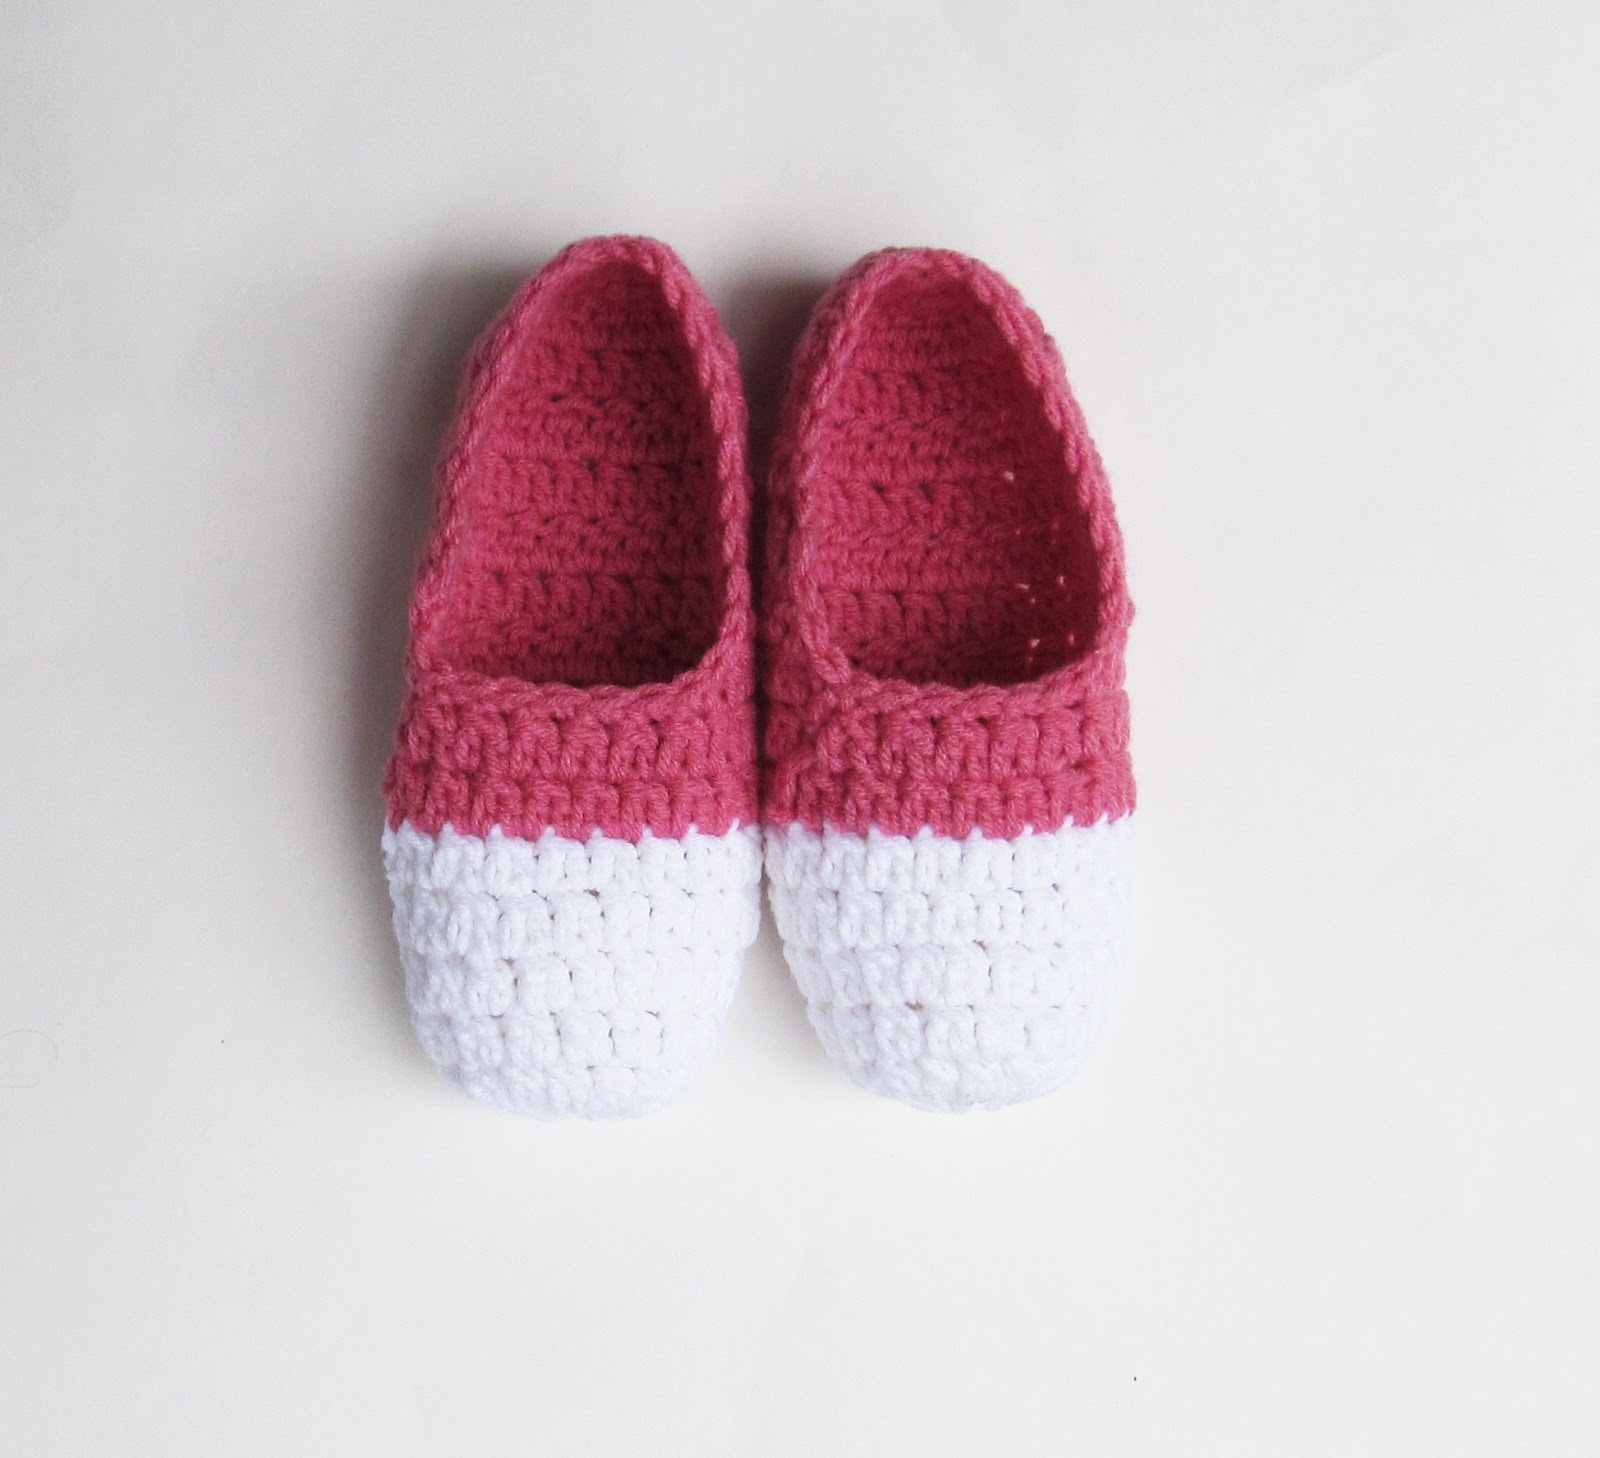 Free Crochet Pattern For Monster Slippers : Tampa Bay Crochet: Save this holiday season. Crochet ...